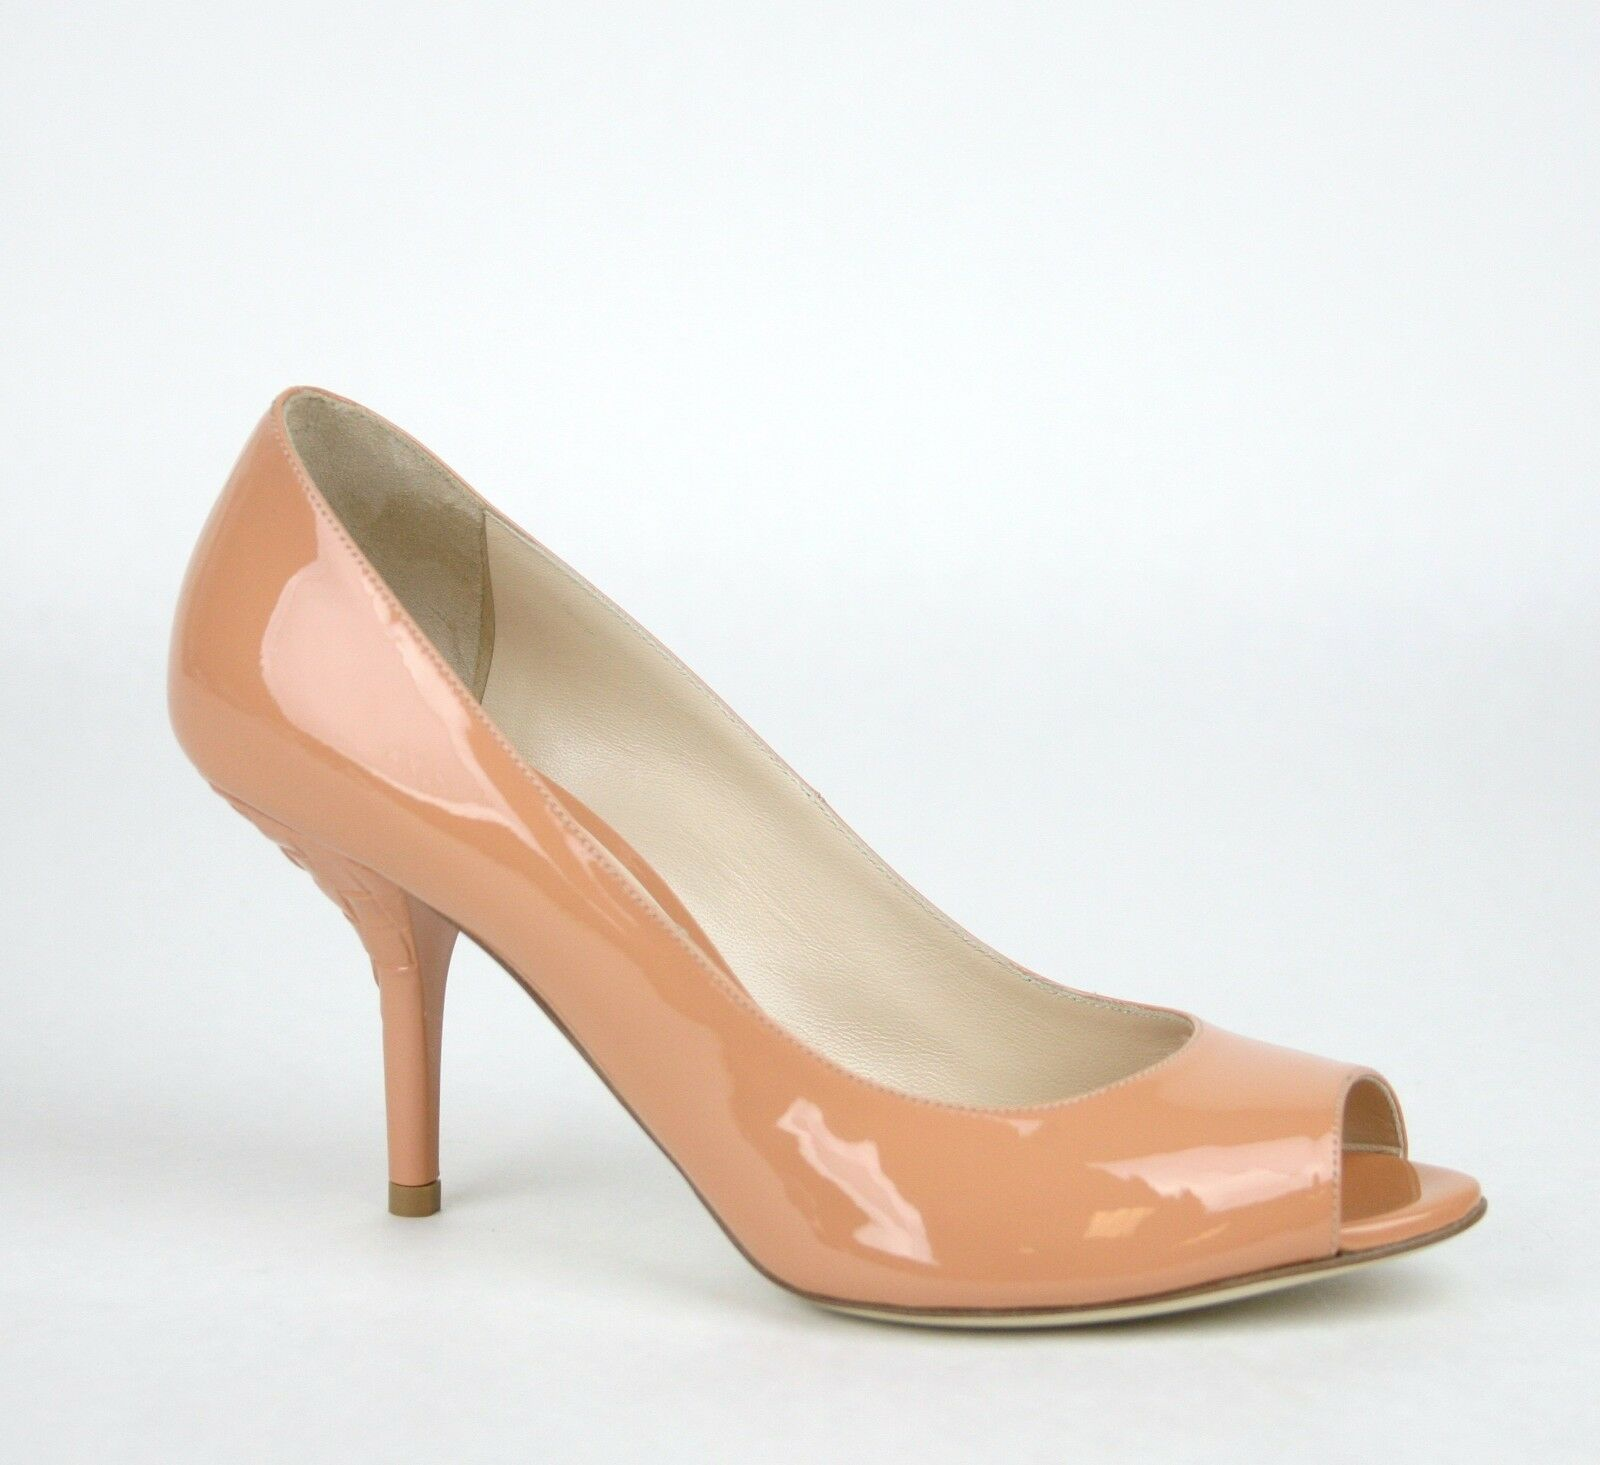 760 New Bottega Veneta Patent Leather Heel Pump Woven Detail Peach 322713 7805